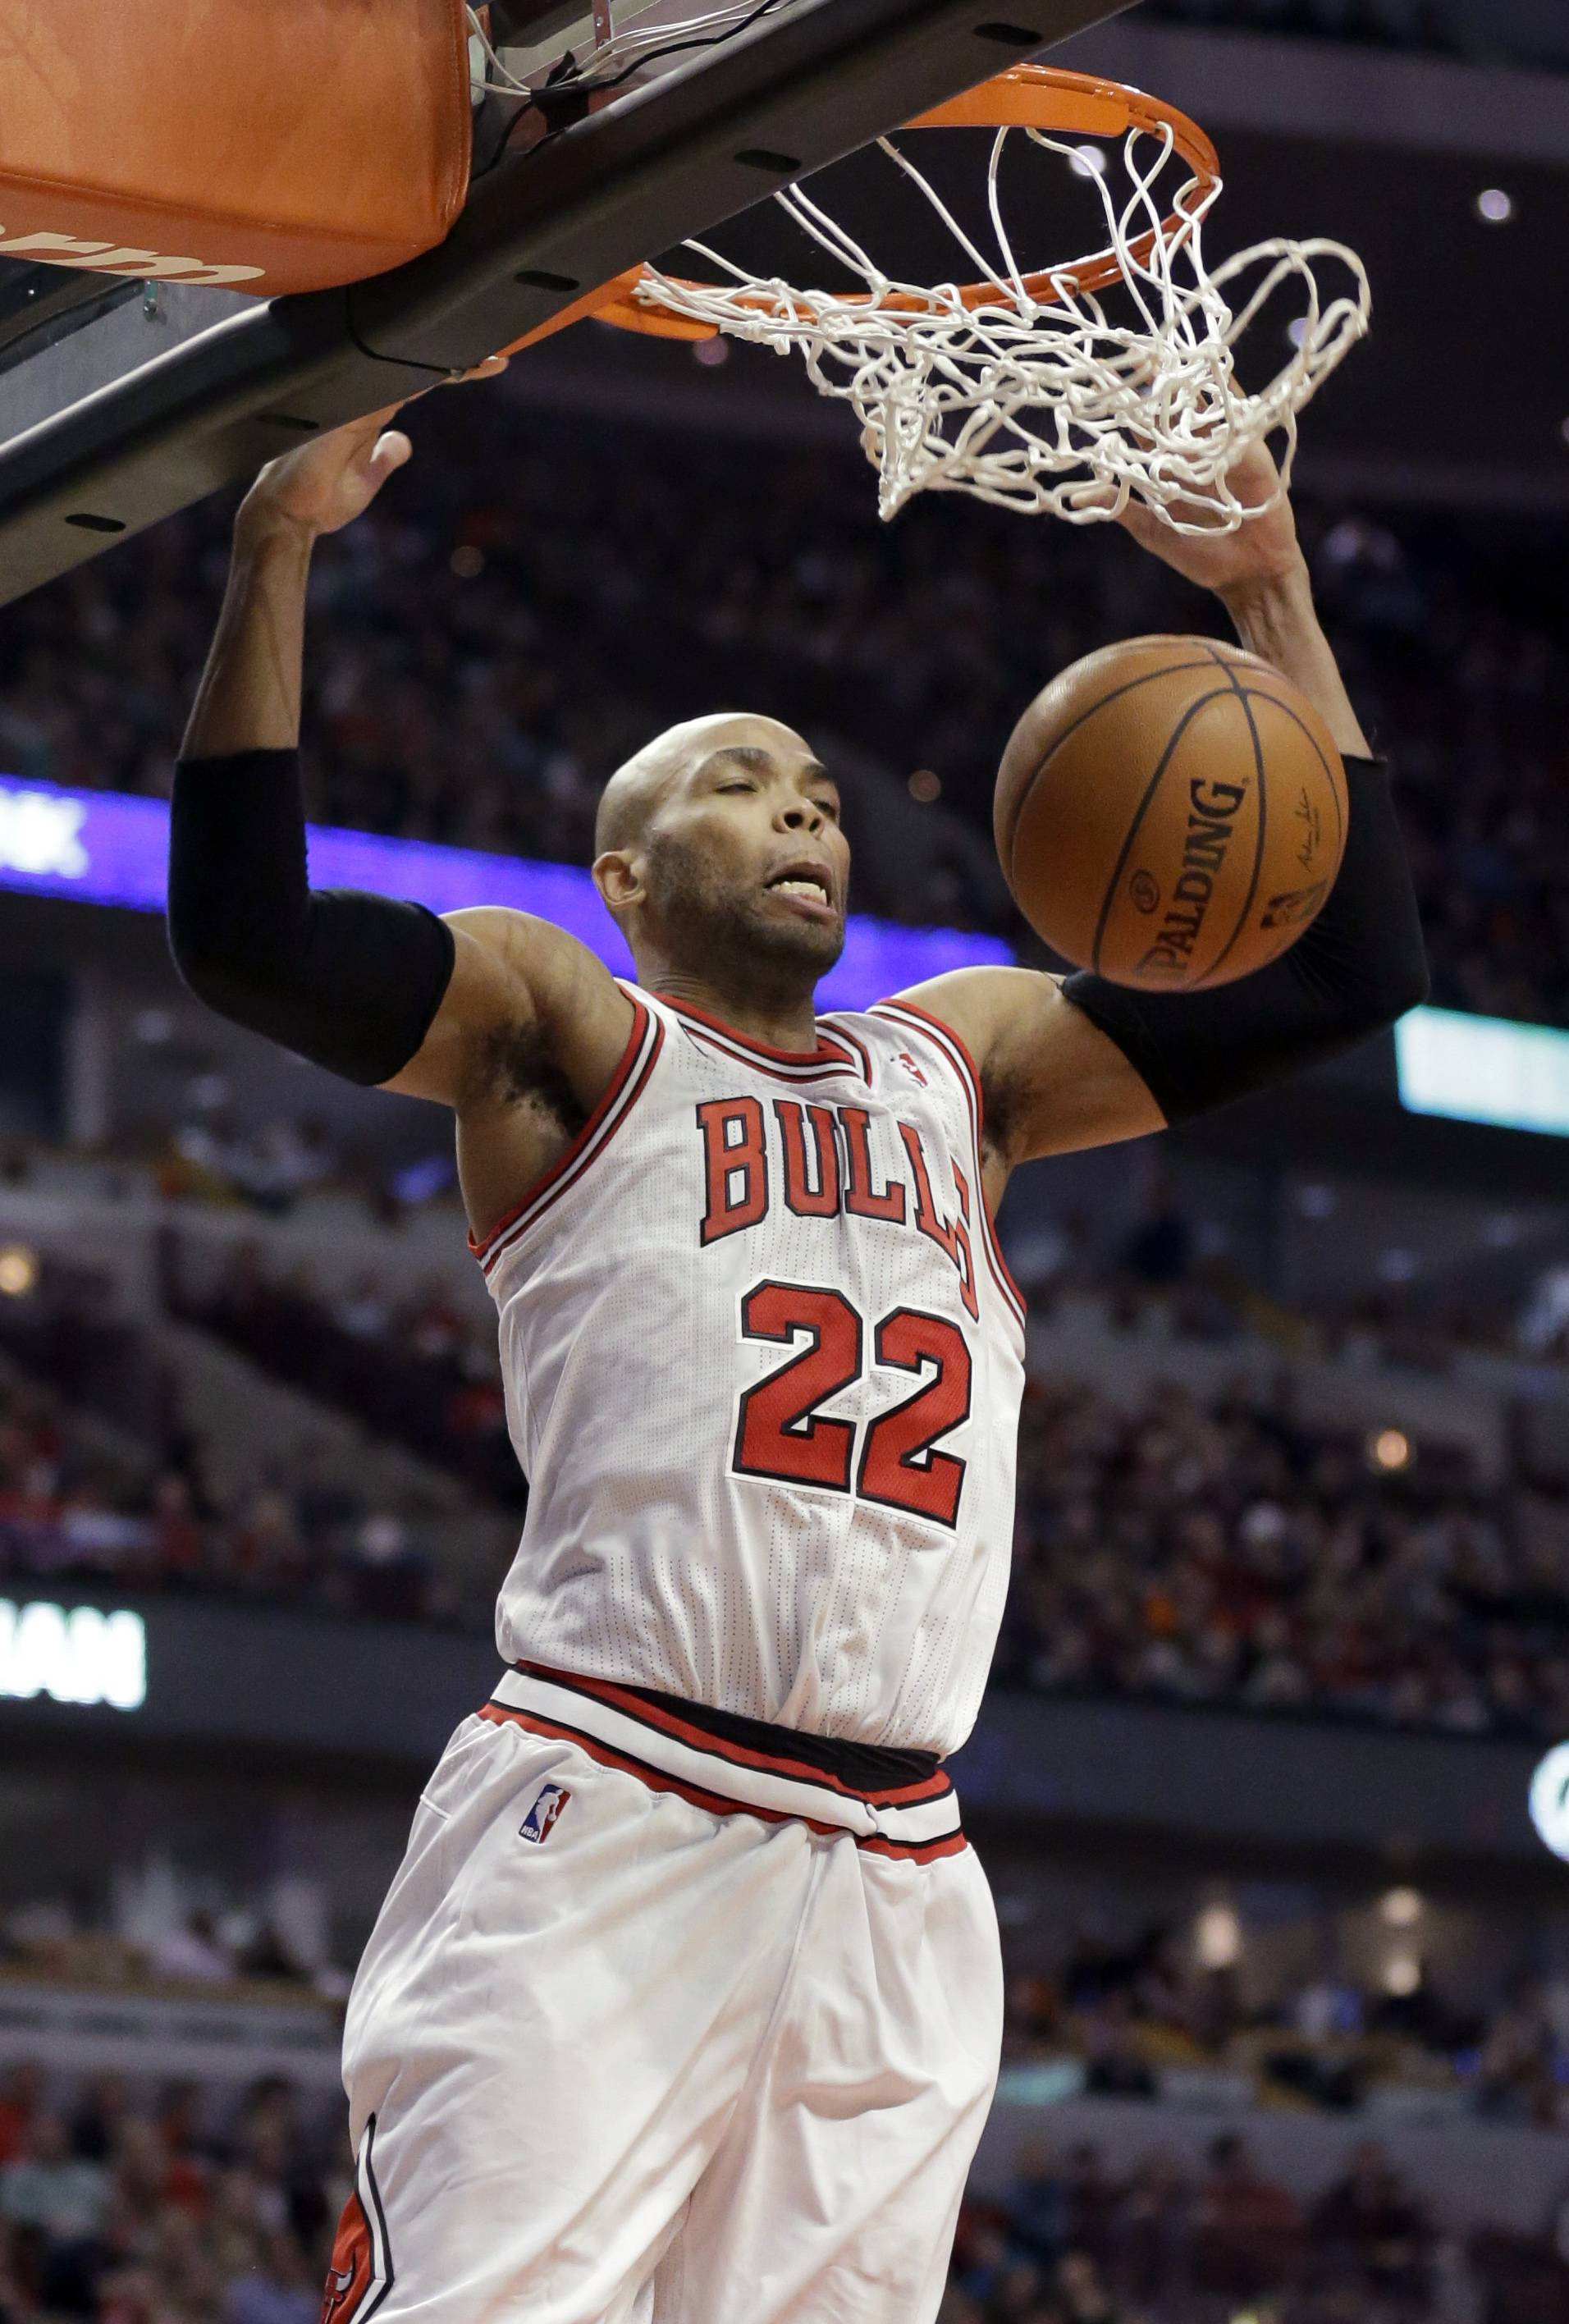 Bulls forward Taj Gibson finished with 16 points in Saturday night's victory.